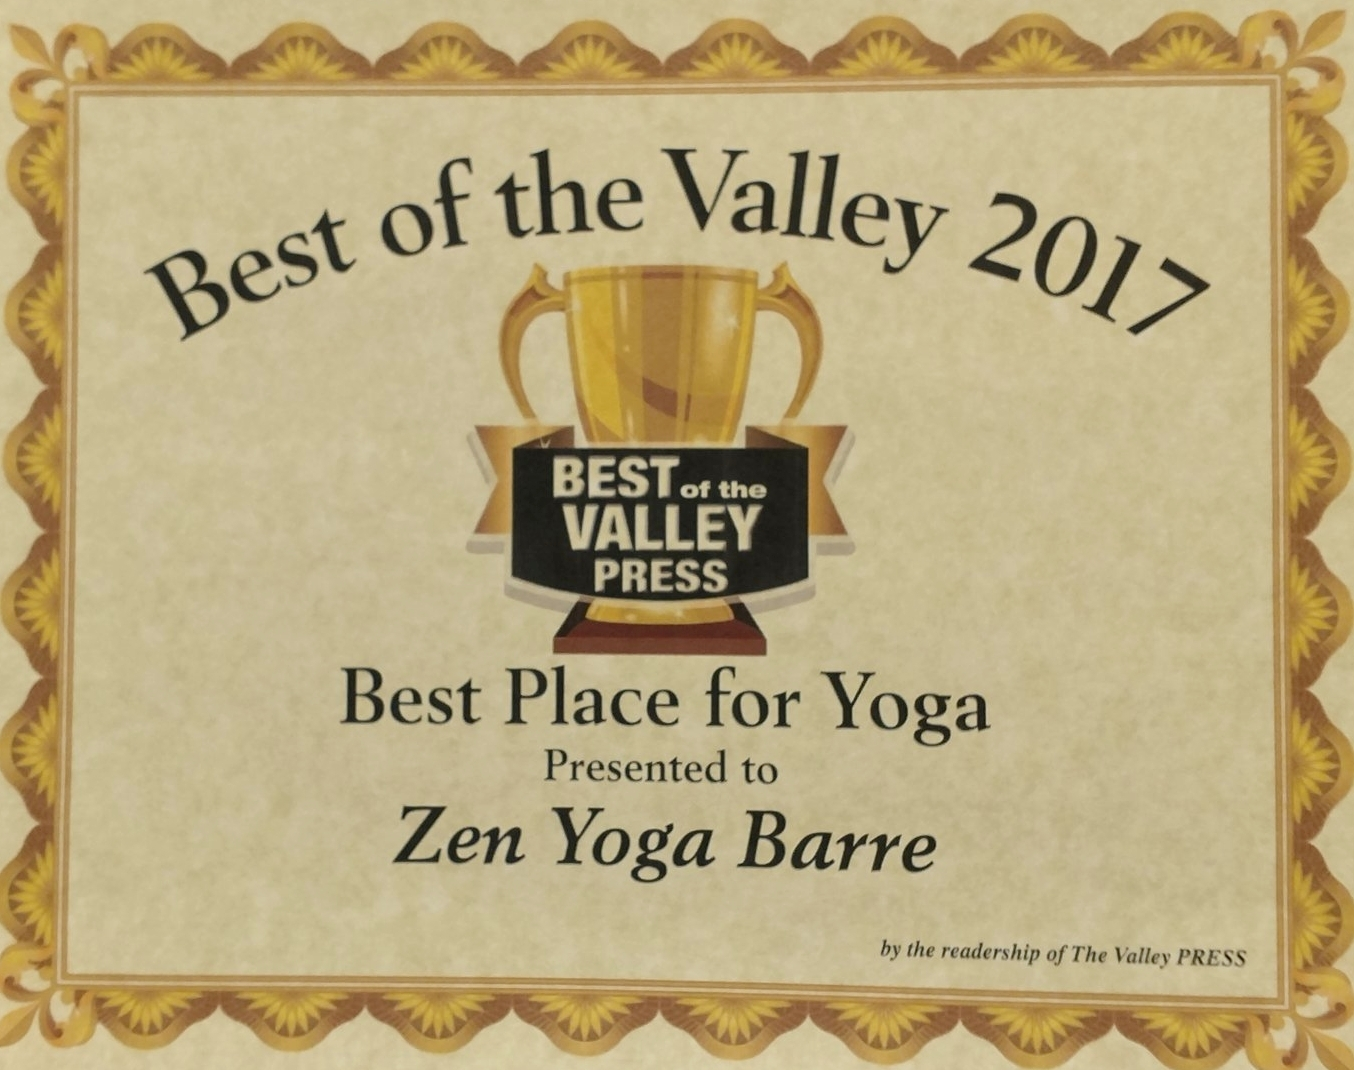 We are happy to announce we won Best Place for Yoga in the 2017 Best of the Valley Press! Thank you to all who voted and for your continual support.